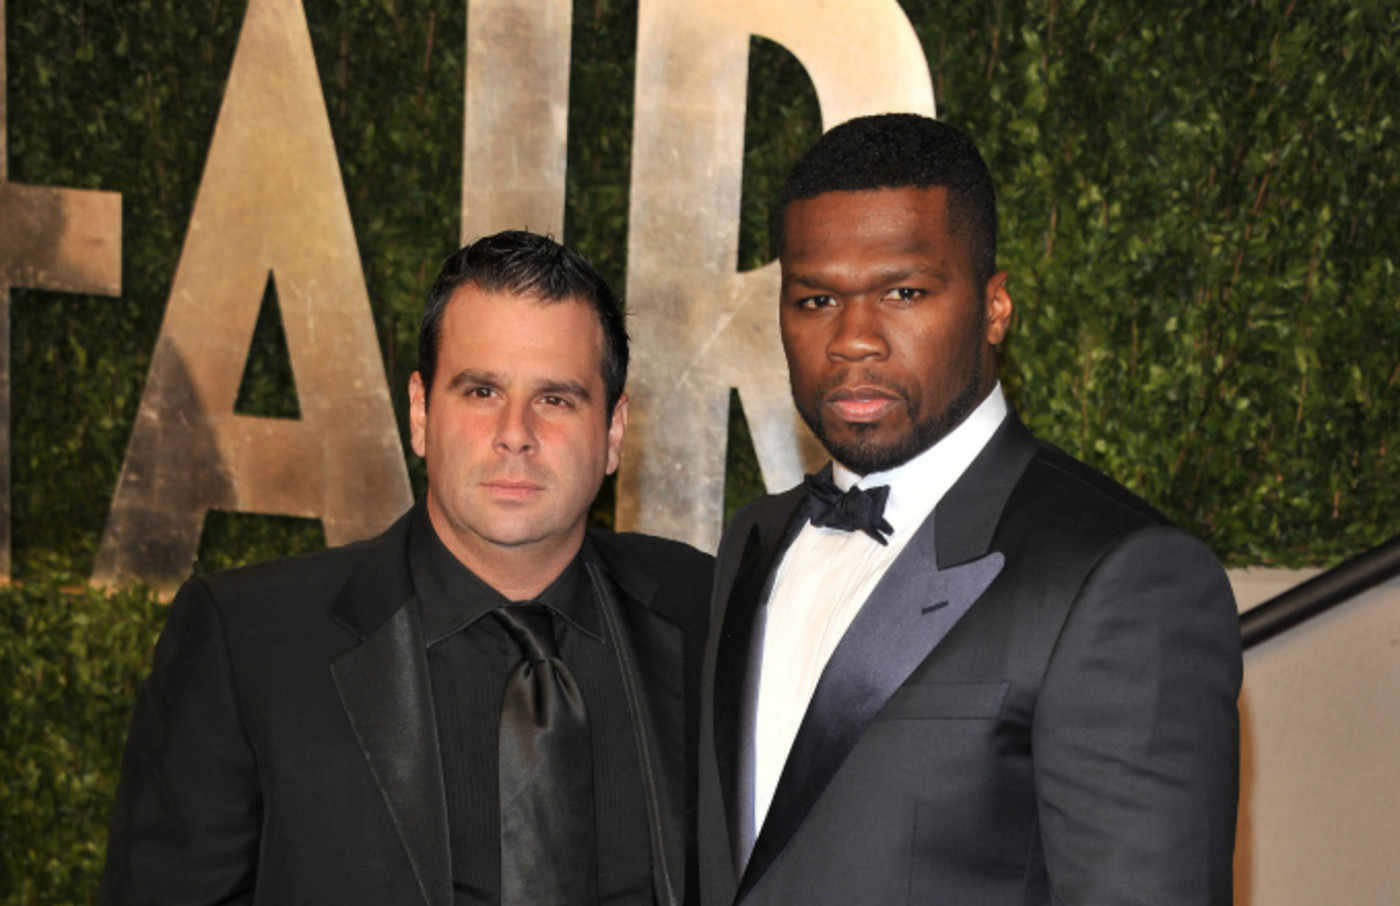 Randall Emmett and Curtis '50 Cent' Jackson arrive at the Vanity Fair Oscar party